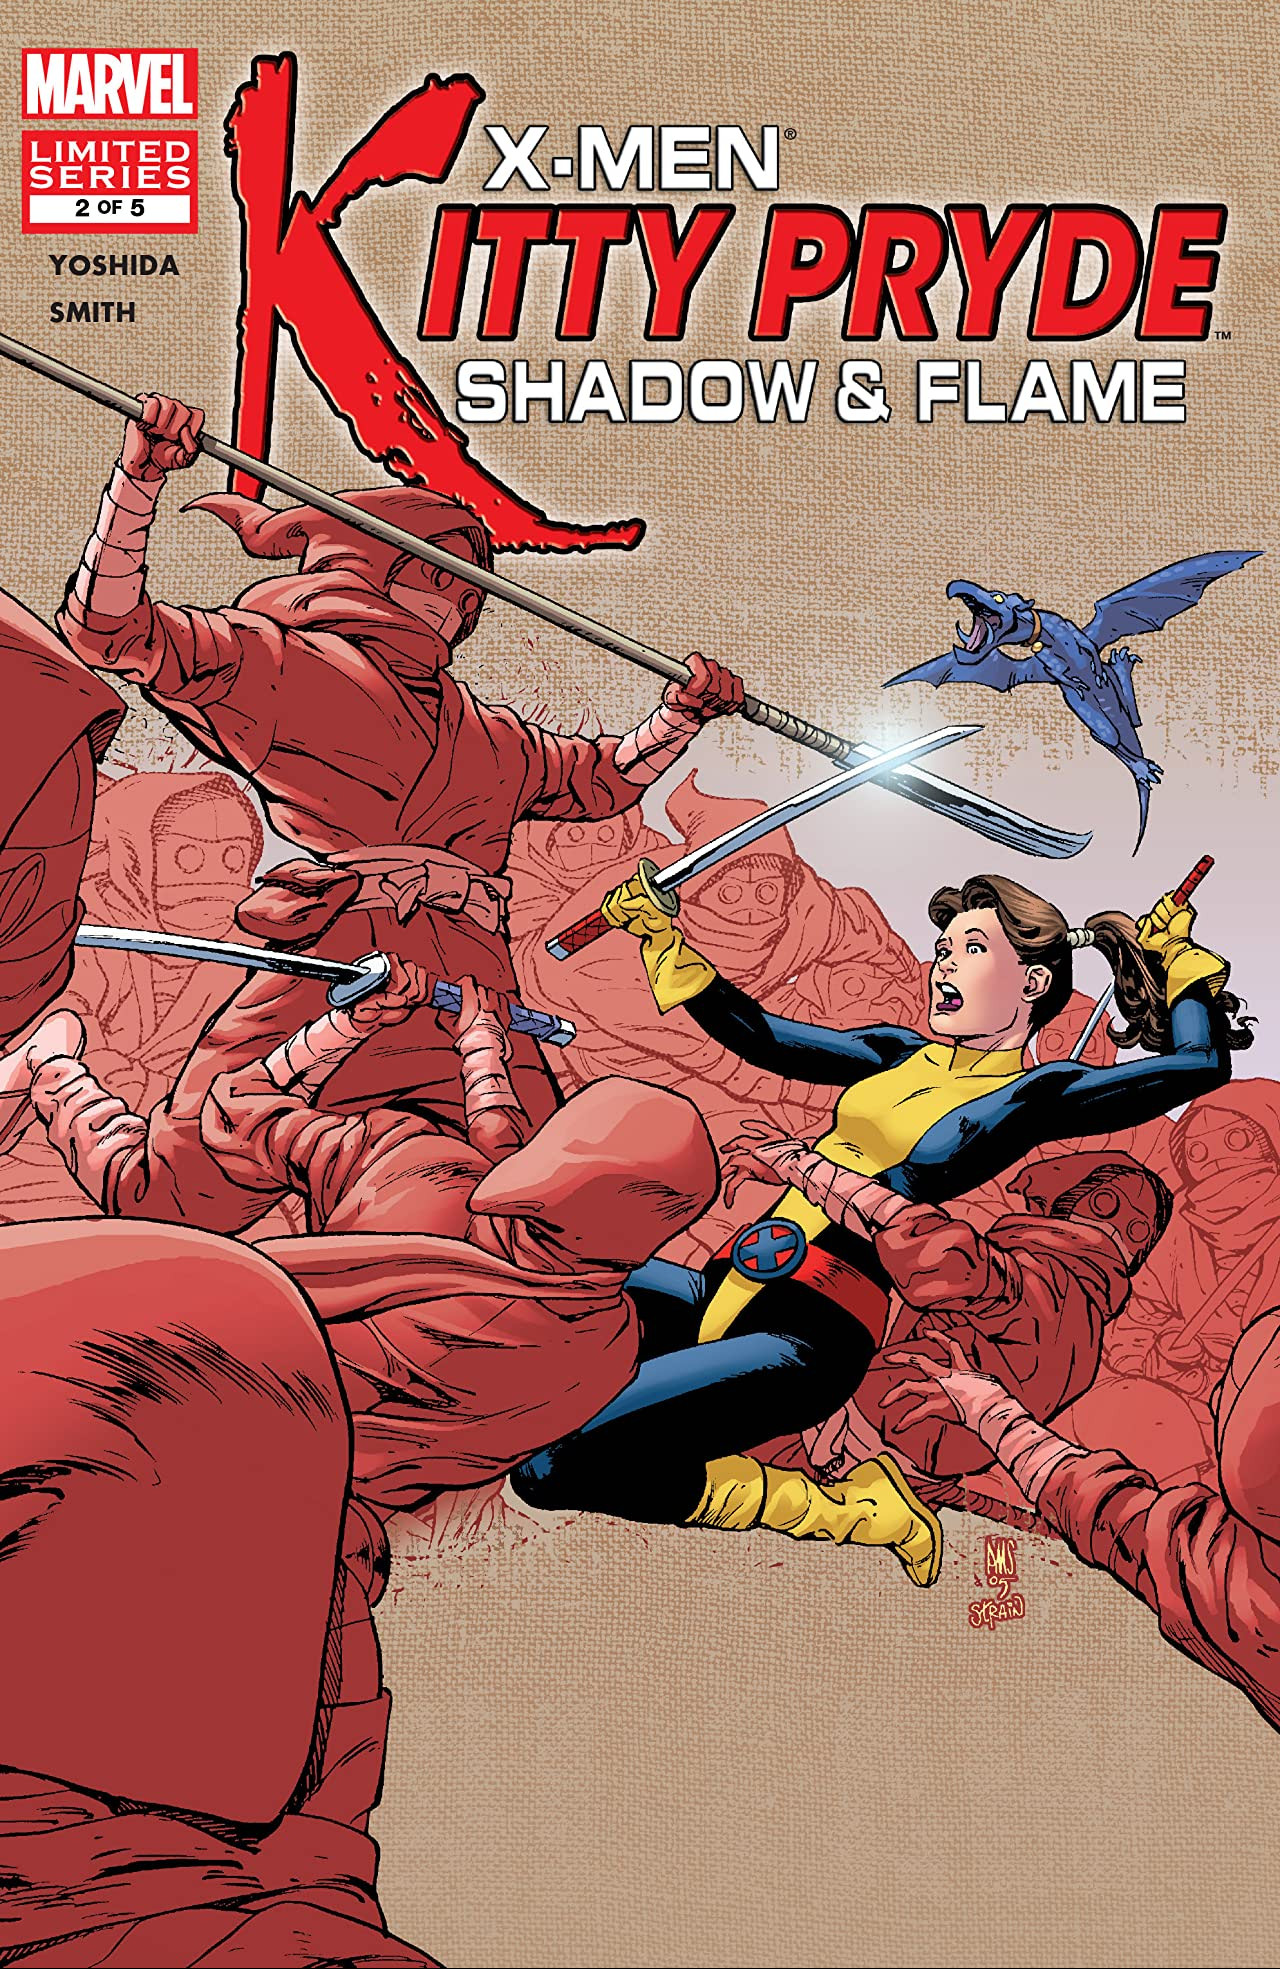 X-Men: Kitty Pryde - Shadow & Flame Vol 1 2